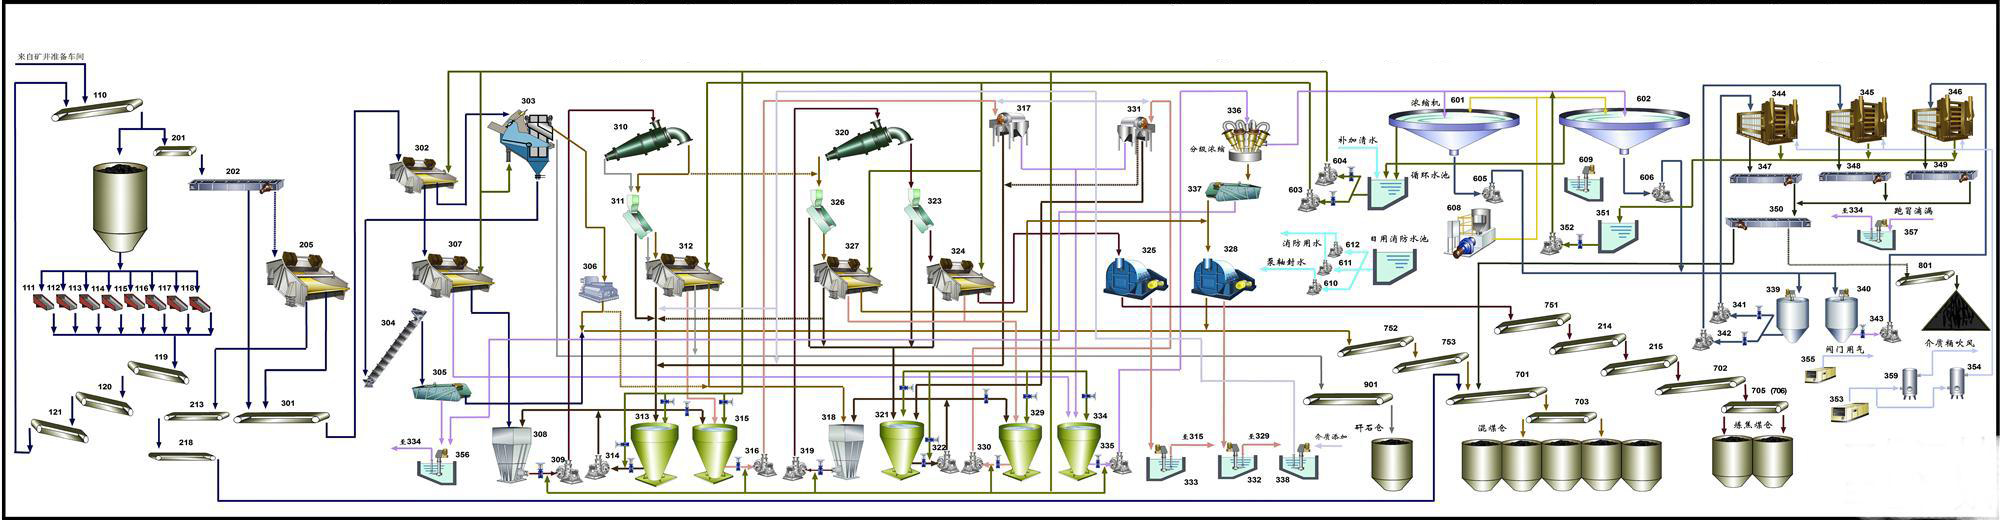 Coking_Coal_Washing_Flowsheet_of_Conventional_Dense_Medium_Cyclone_HOT_Mining_Tech_Co_Ltd